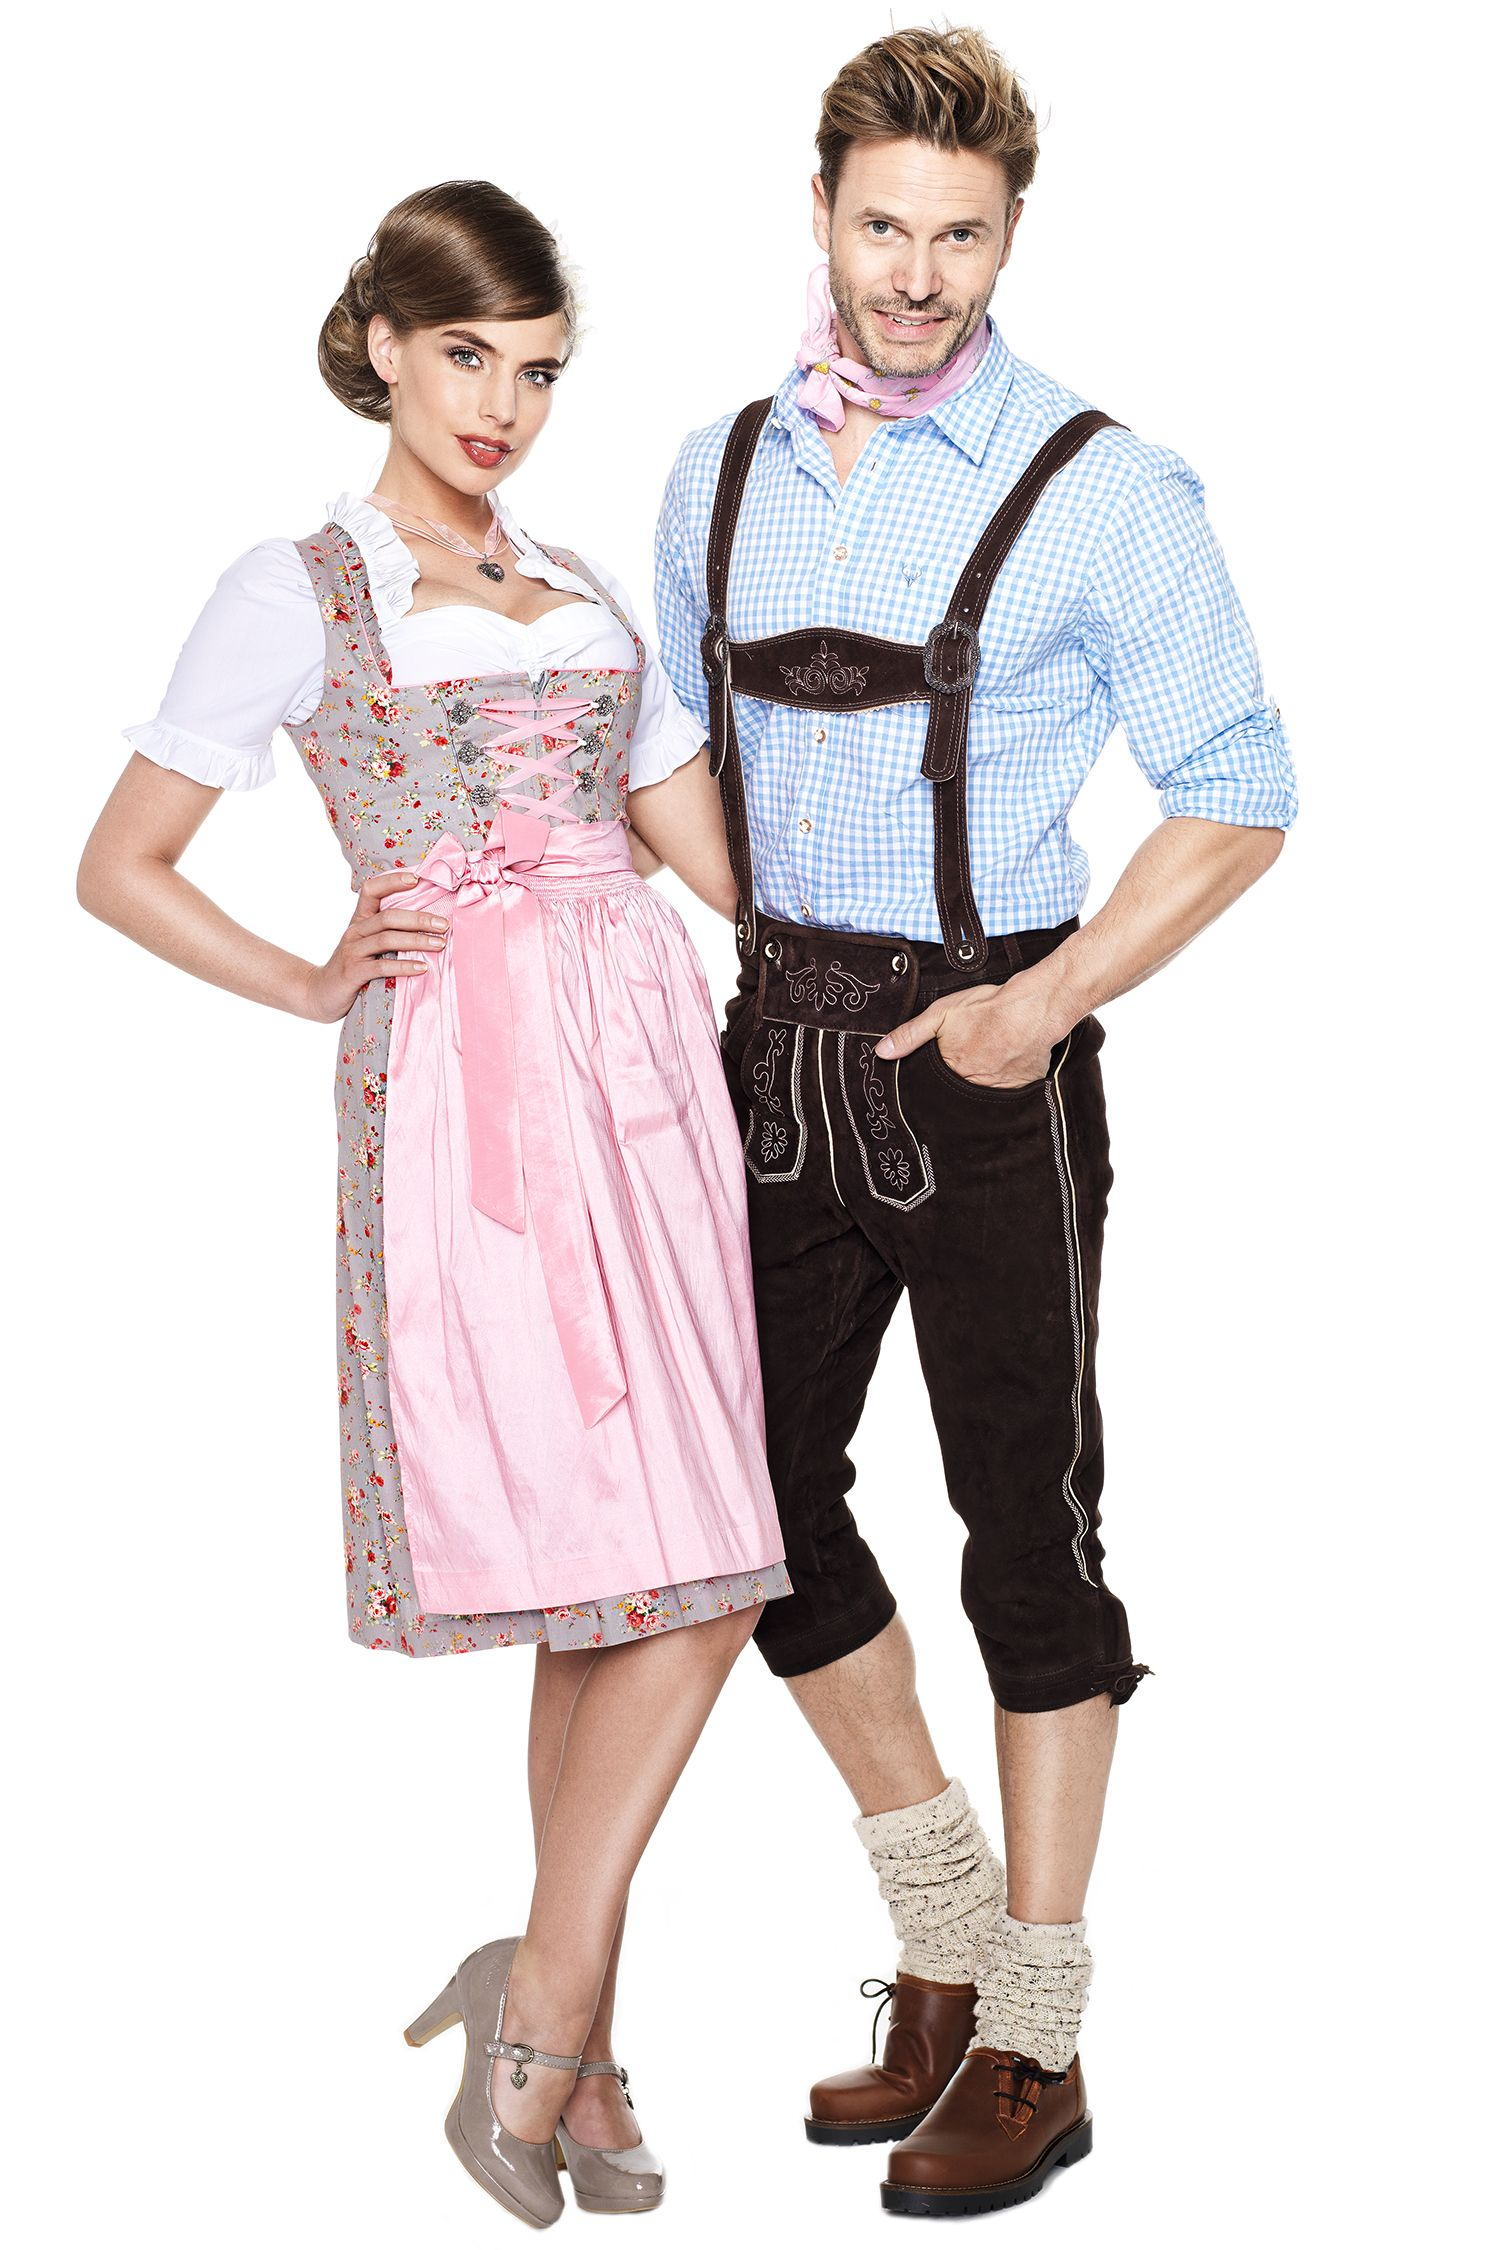 angermaier trachtenangermaier tracht dirndl weste lederhose gilet dirndl pinterest. Black Bedroom Furniture Sets. Home Design Ideas